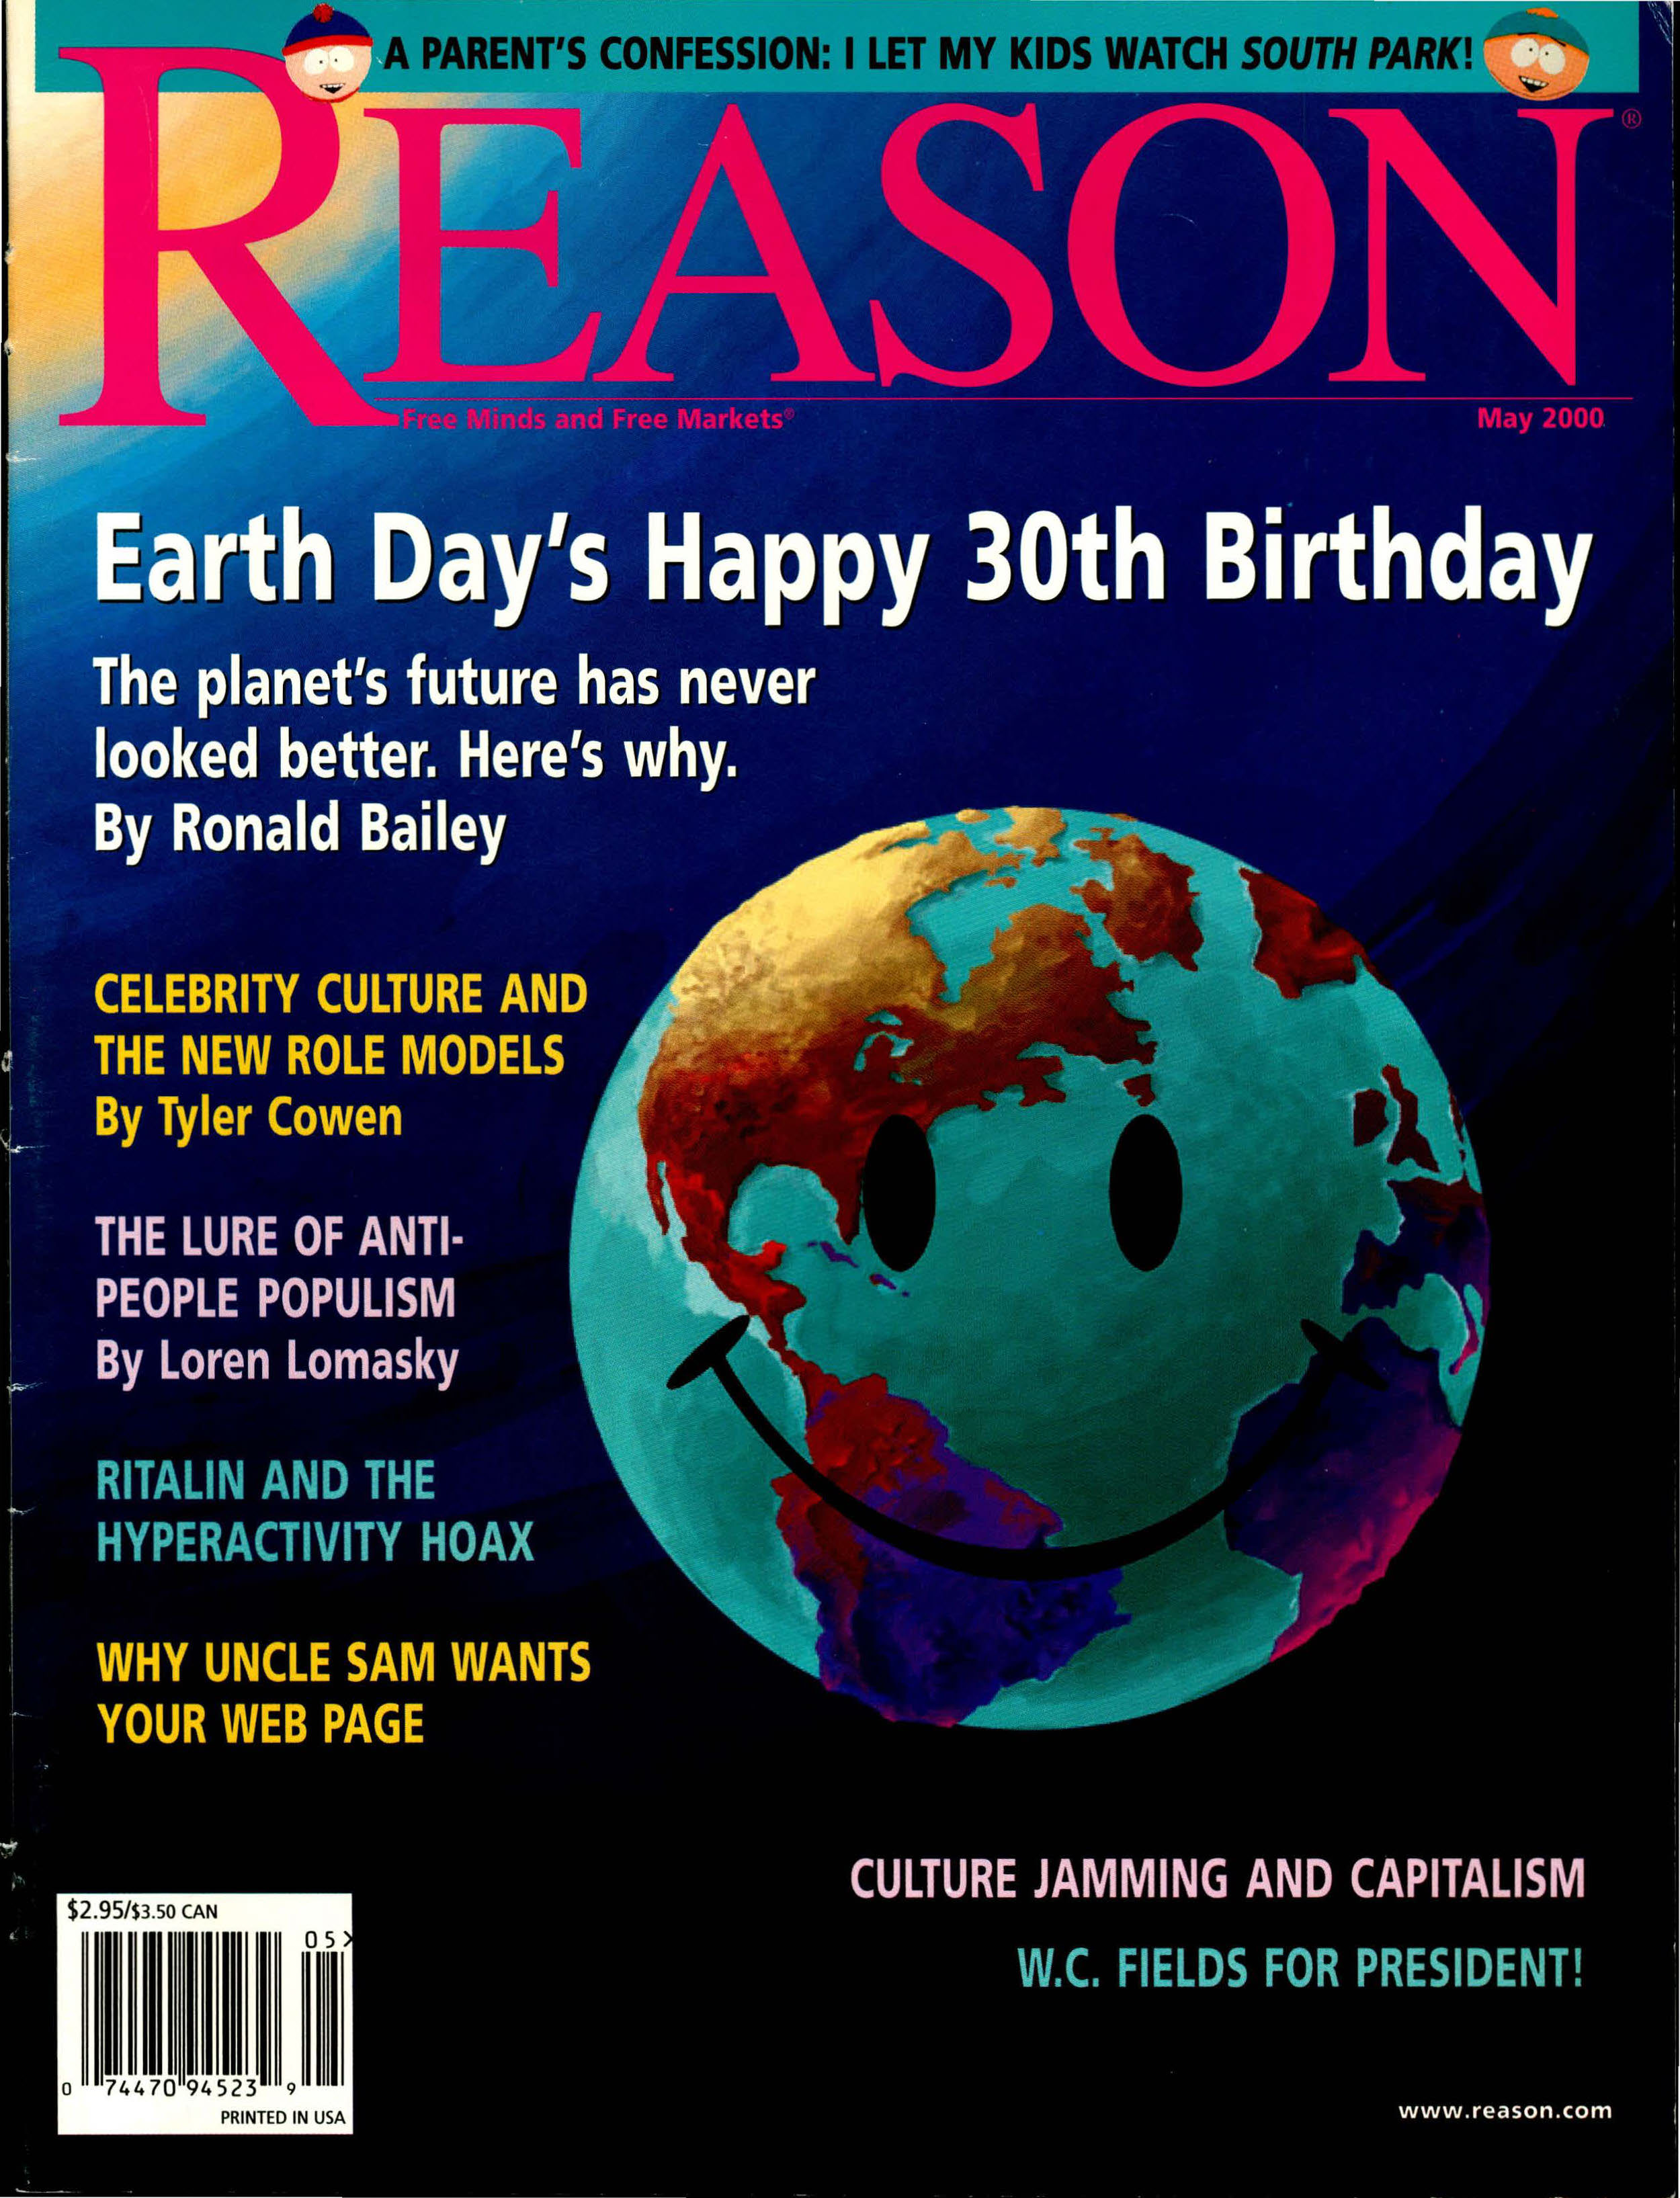 Reason Magazine, May 2000 cover image